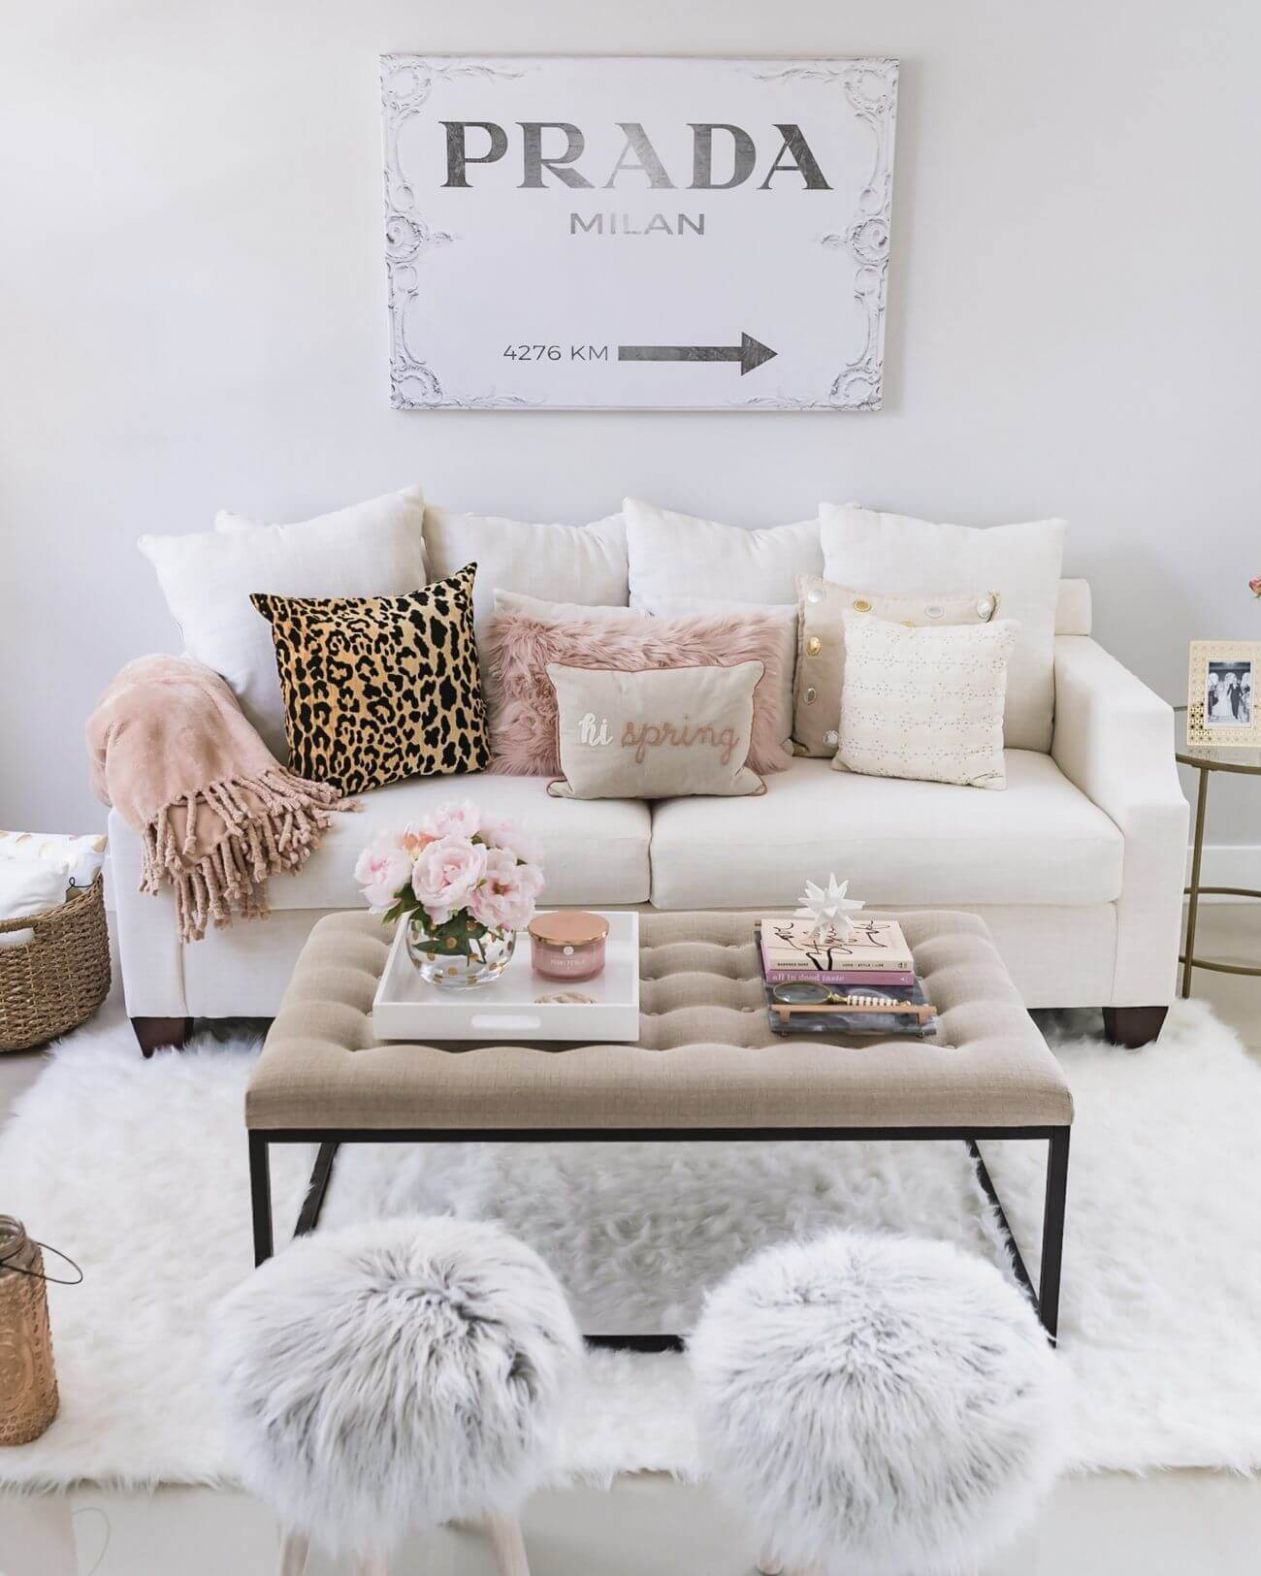 9 Best Small Apartment Living Room Decor and Design Ideas for 99 - apartment decorating ideas for young adults